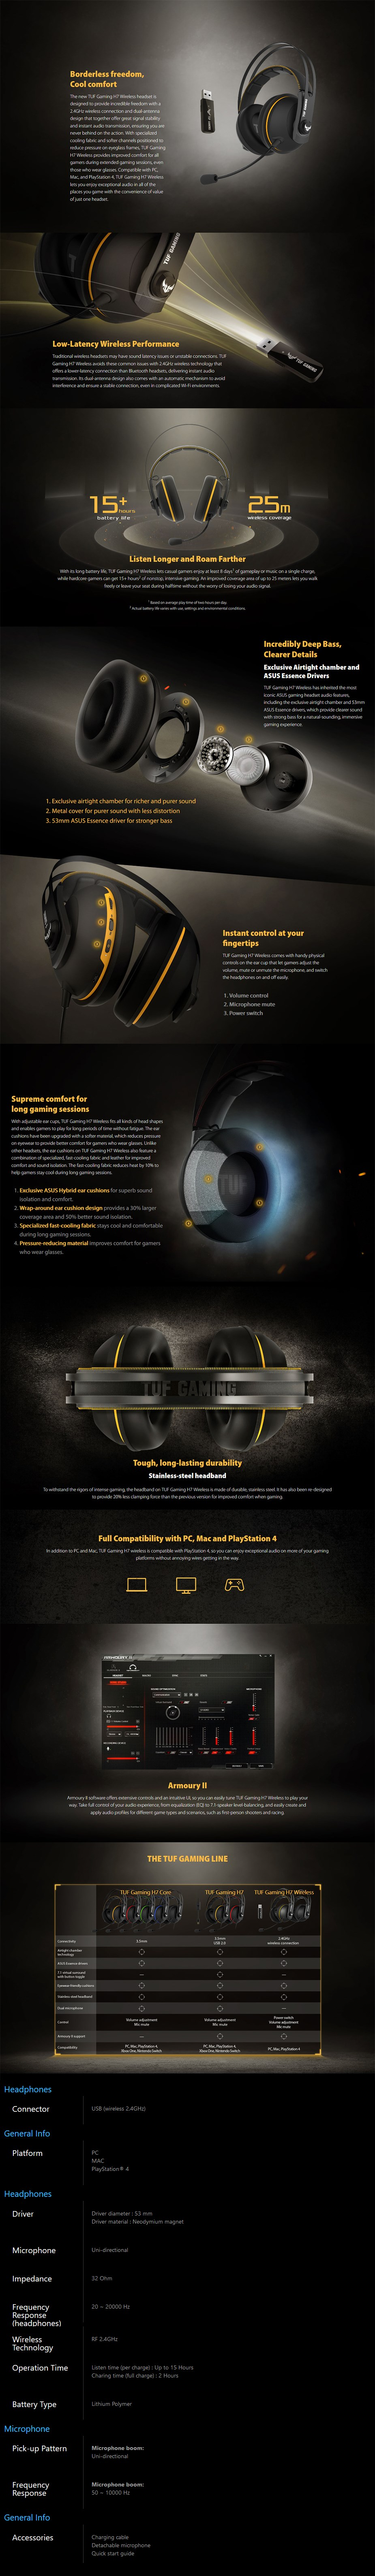 ASUS TUF Gaming H7 Wireless Gaming Headset - Yellow - Overview 1